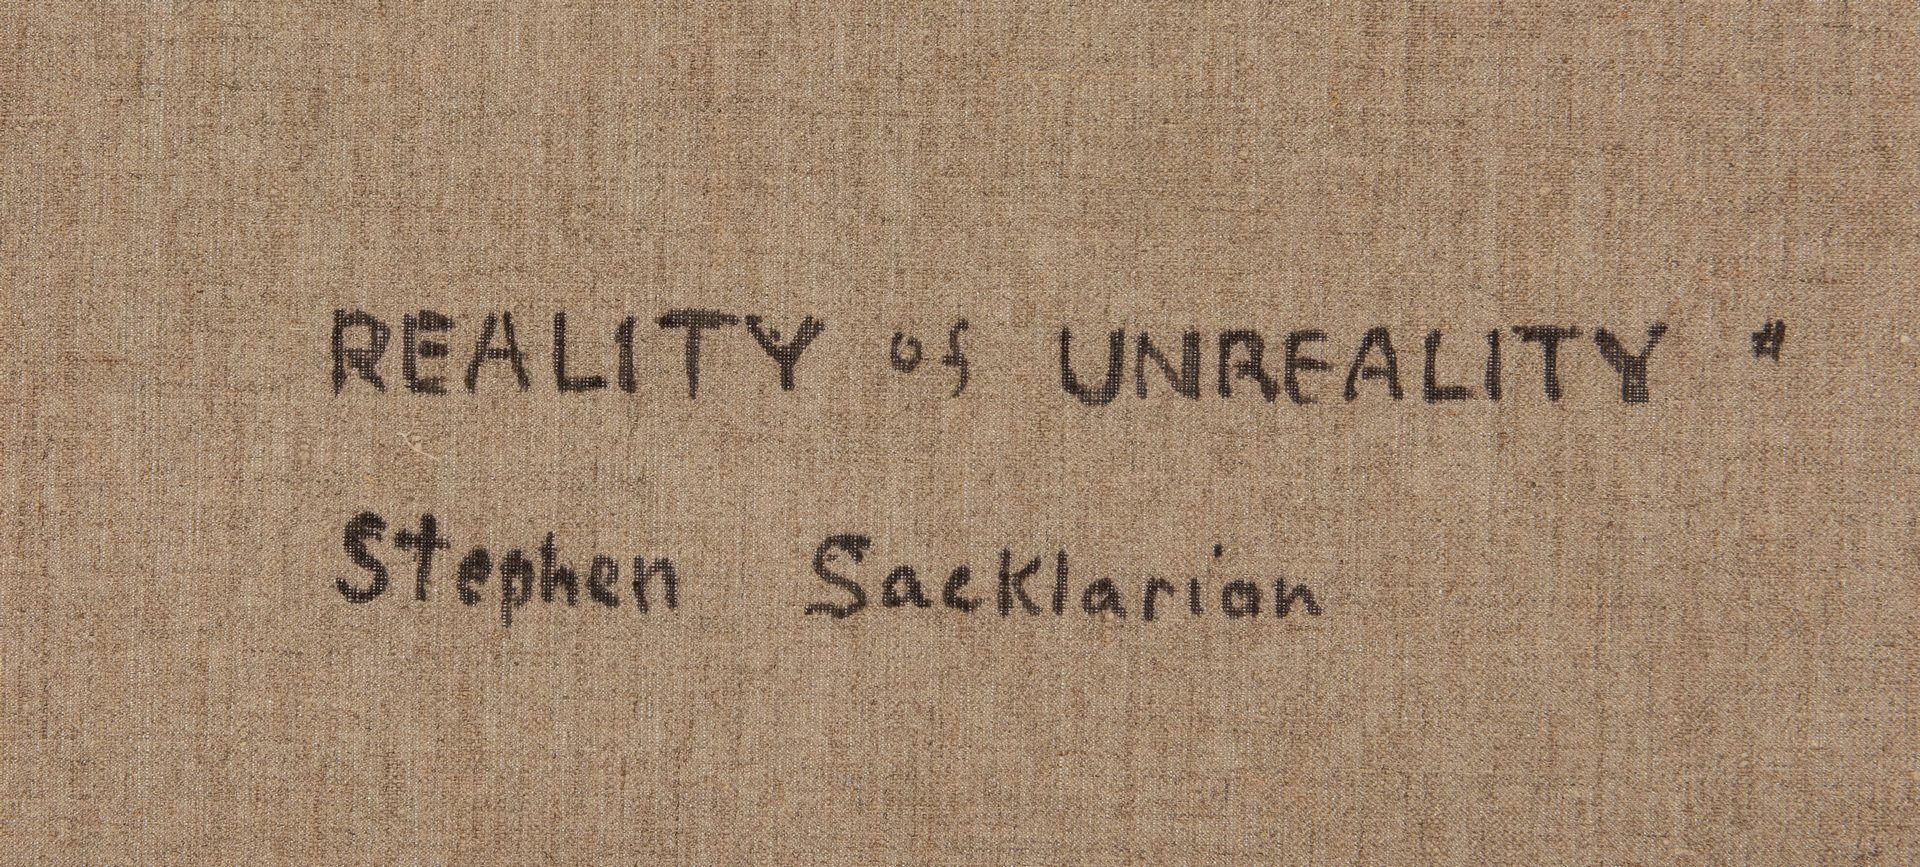 Lot 542: Reality of Unreality (E-9) by Sacklarian